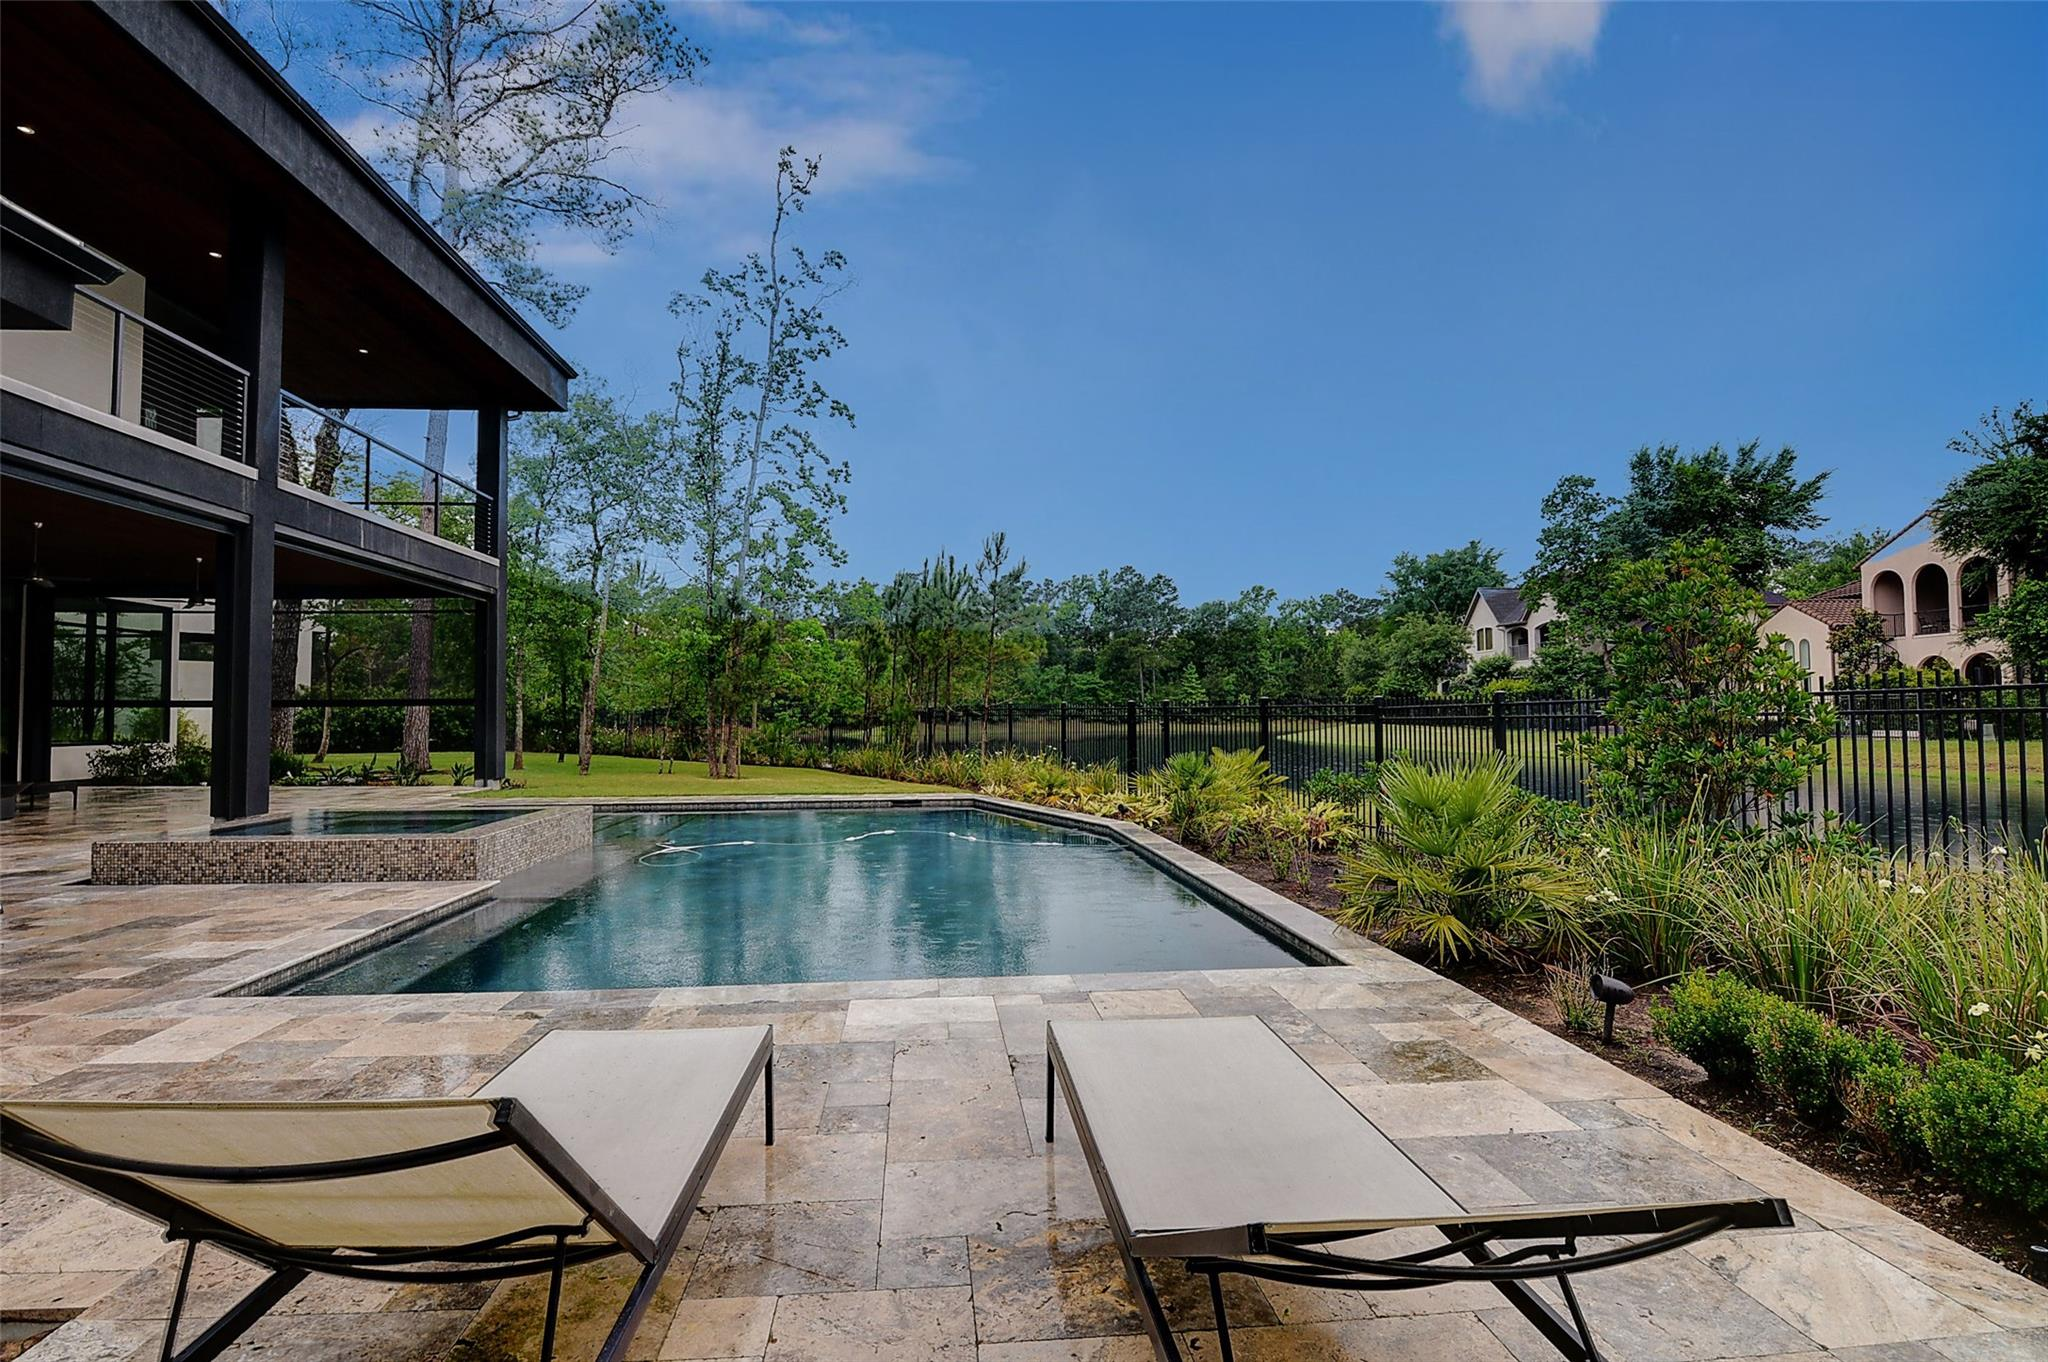 19 BAYOU CLUB Property Photo - The Woodlands, TX real estate listing